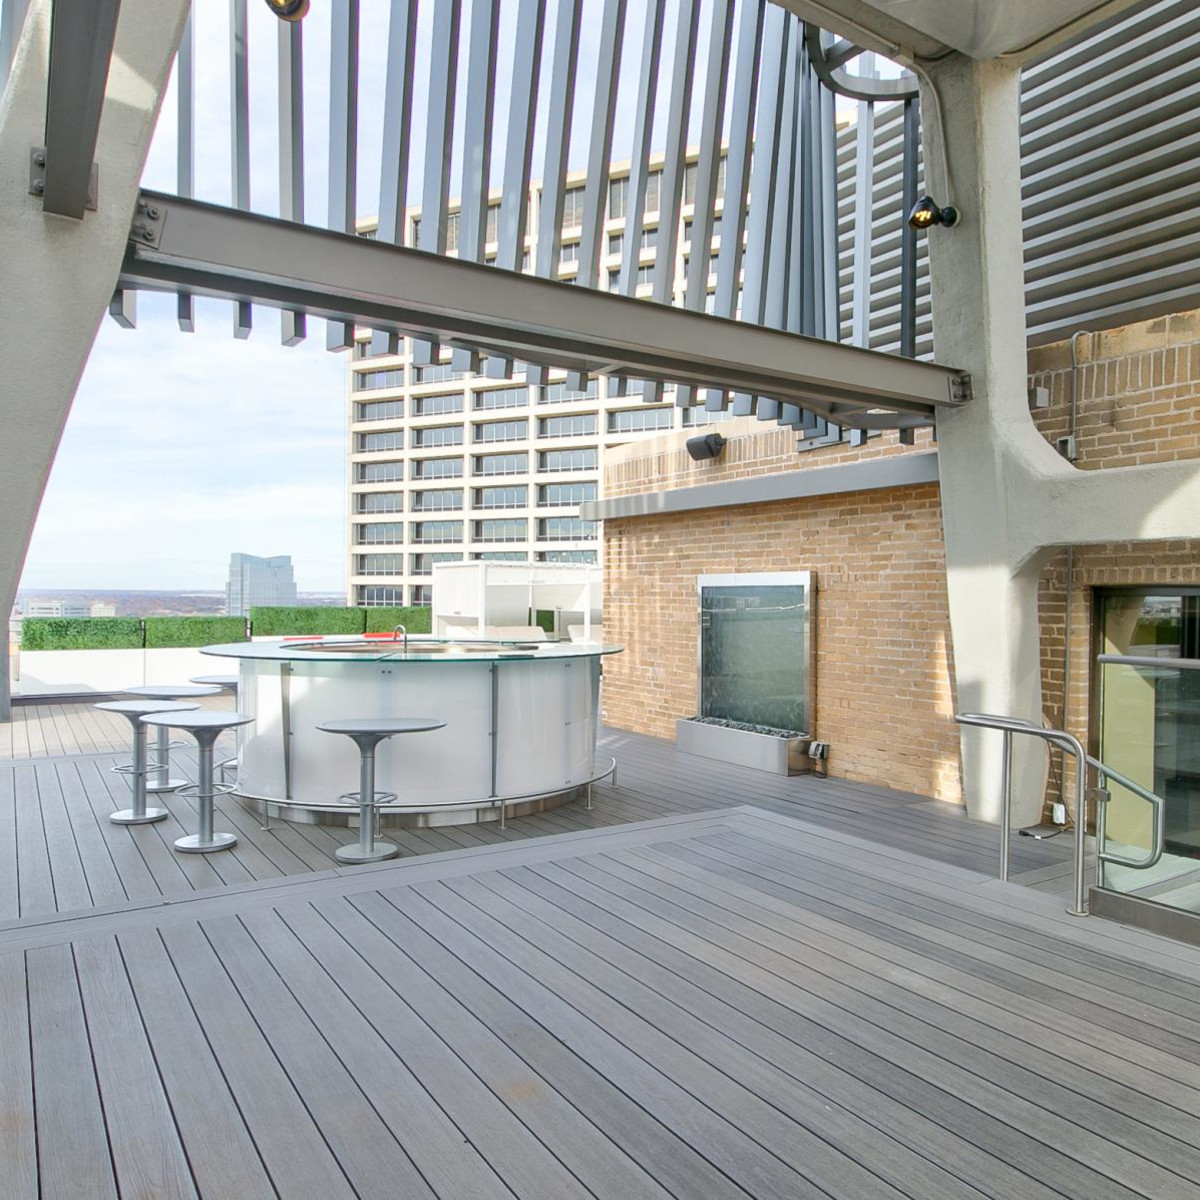 Neil P Penthouse, 411 W. 7th St, Fort Worth